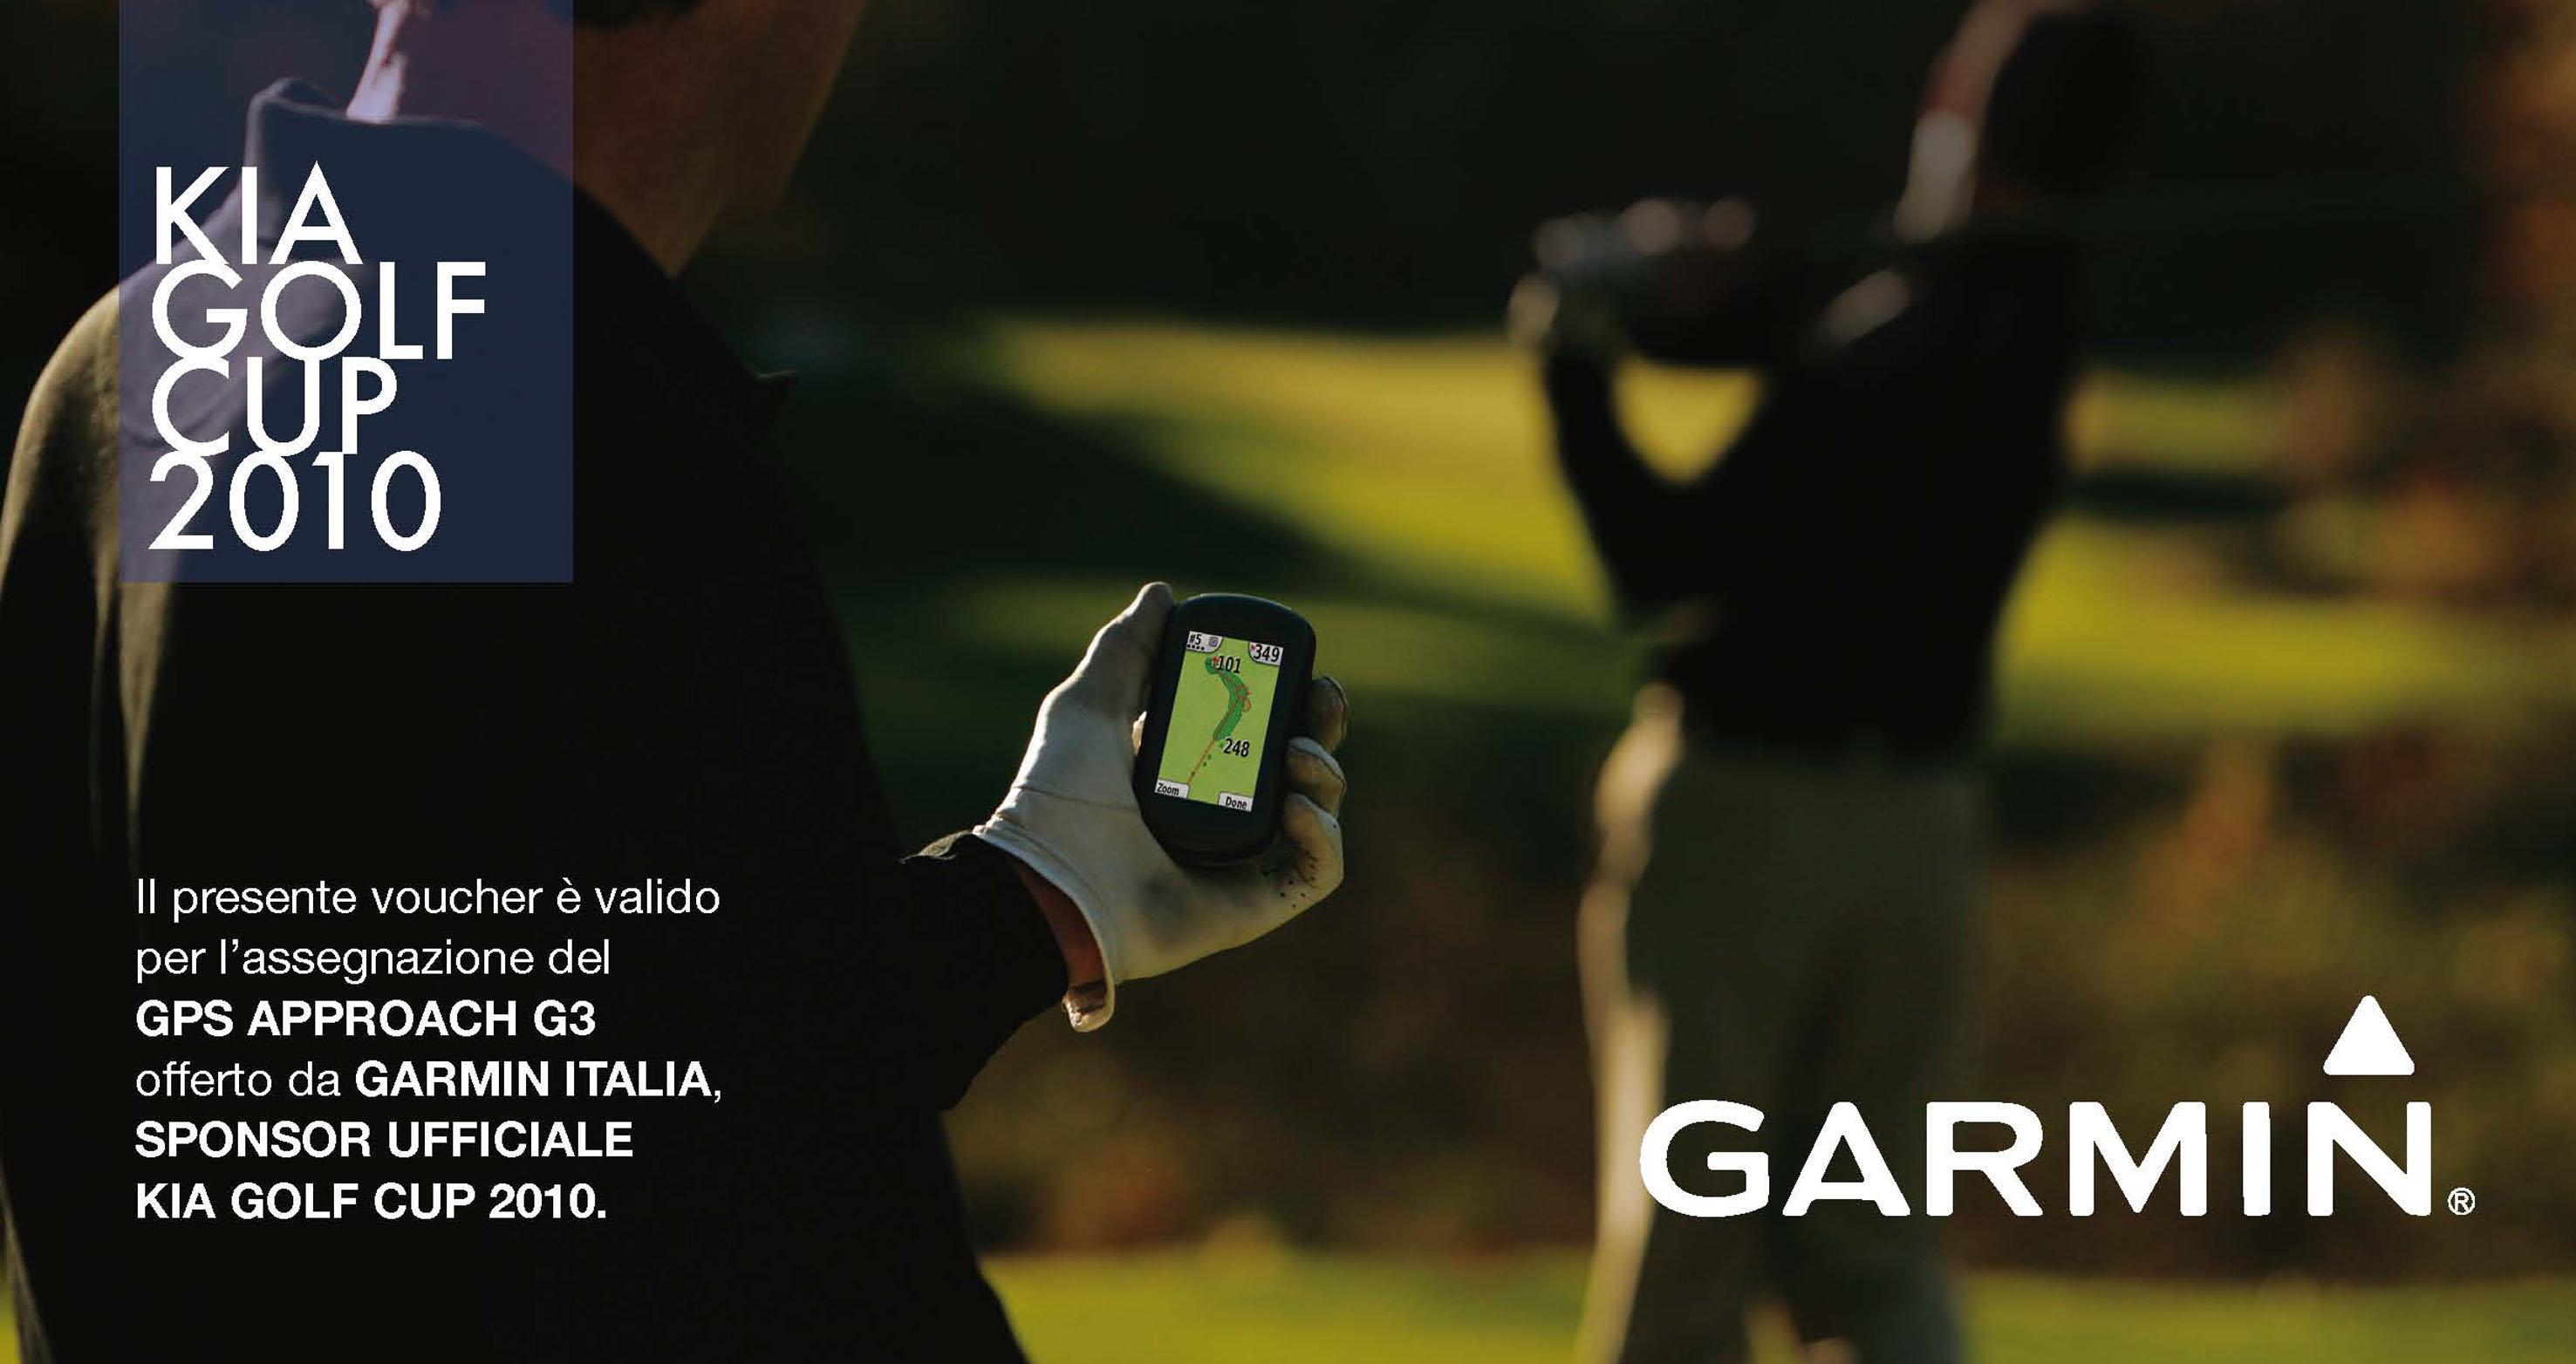 garmin_kia_golf_cup_2010